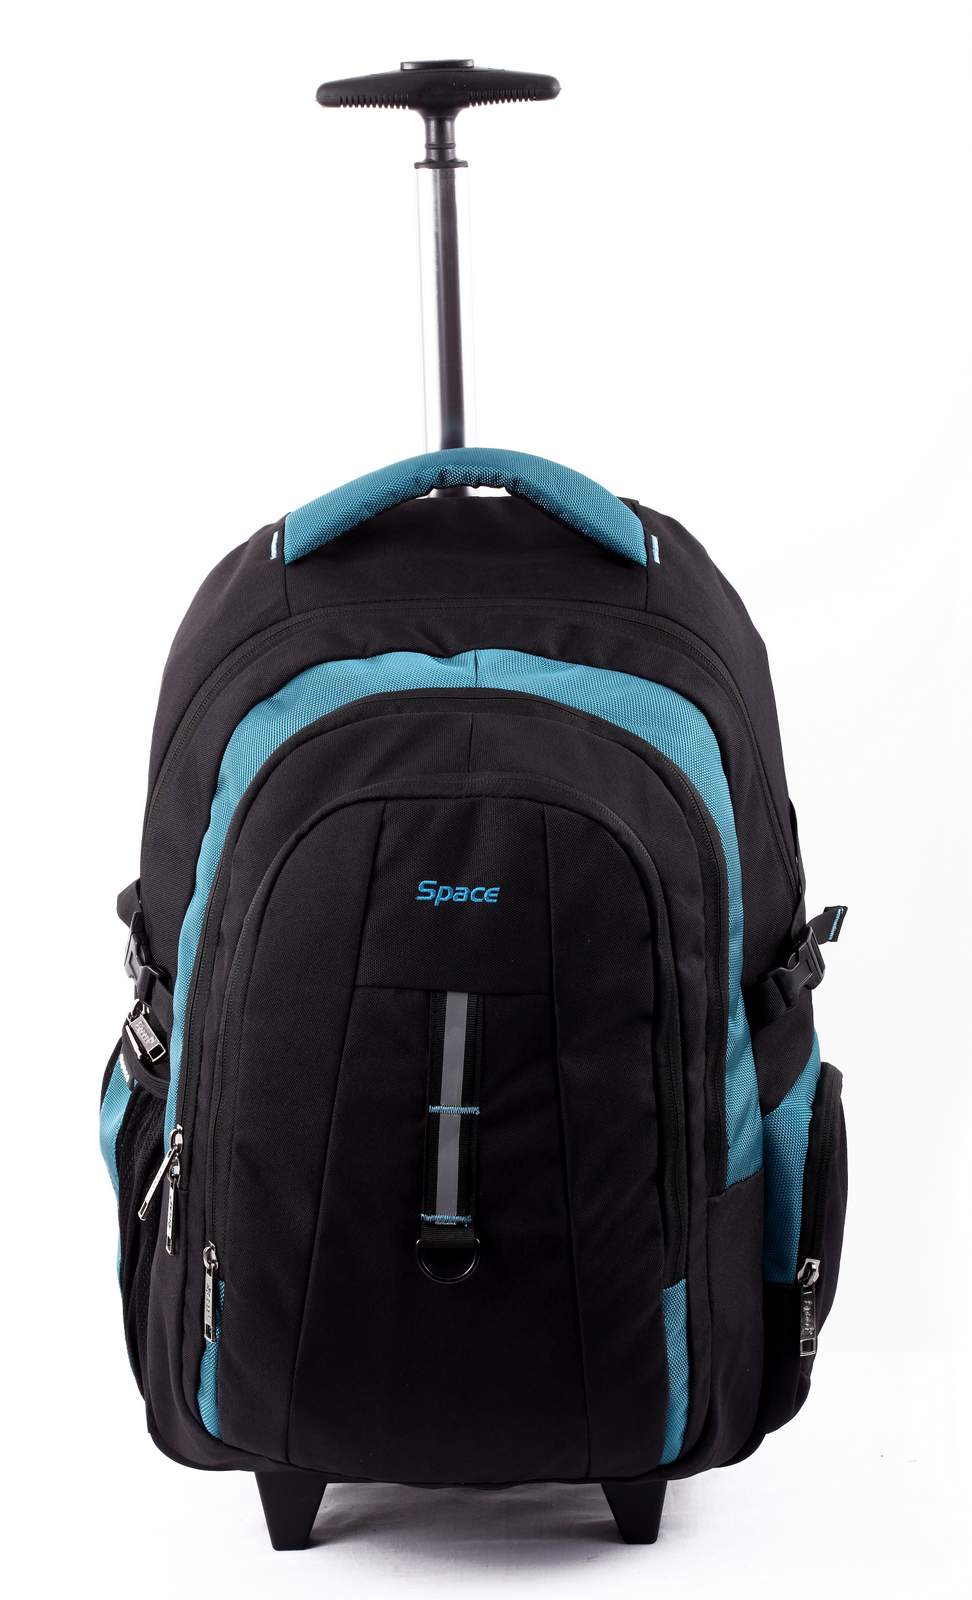 Space Laptop Backpack Roller Strolley Bag in Bangalore